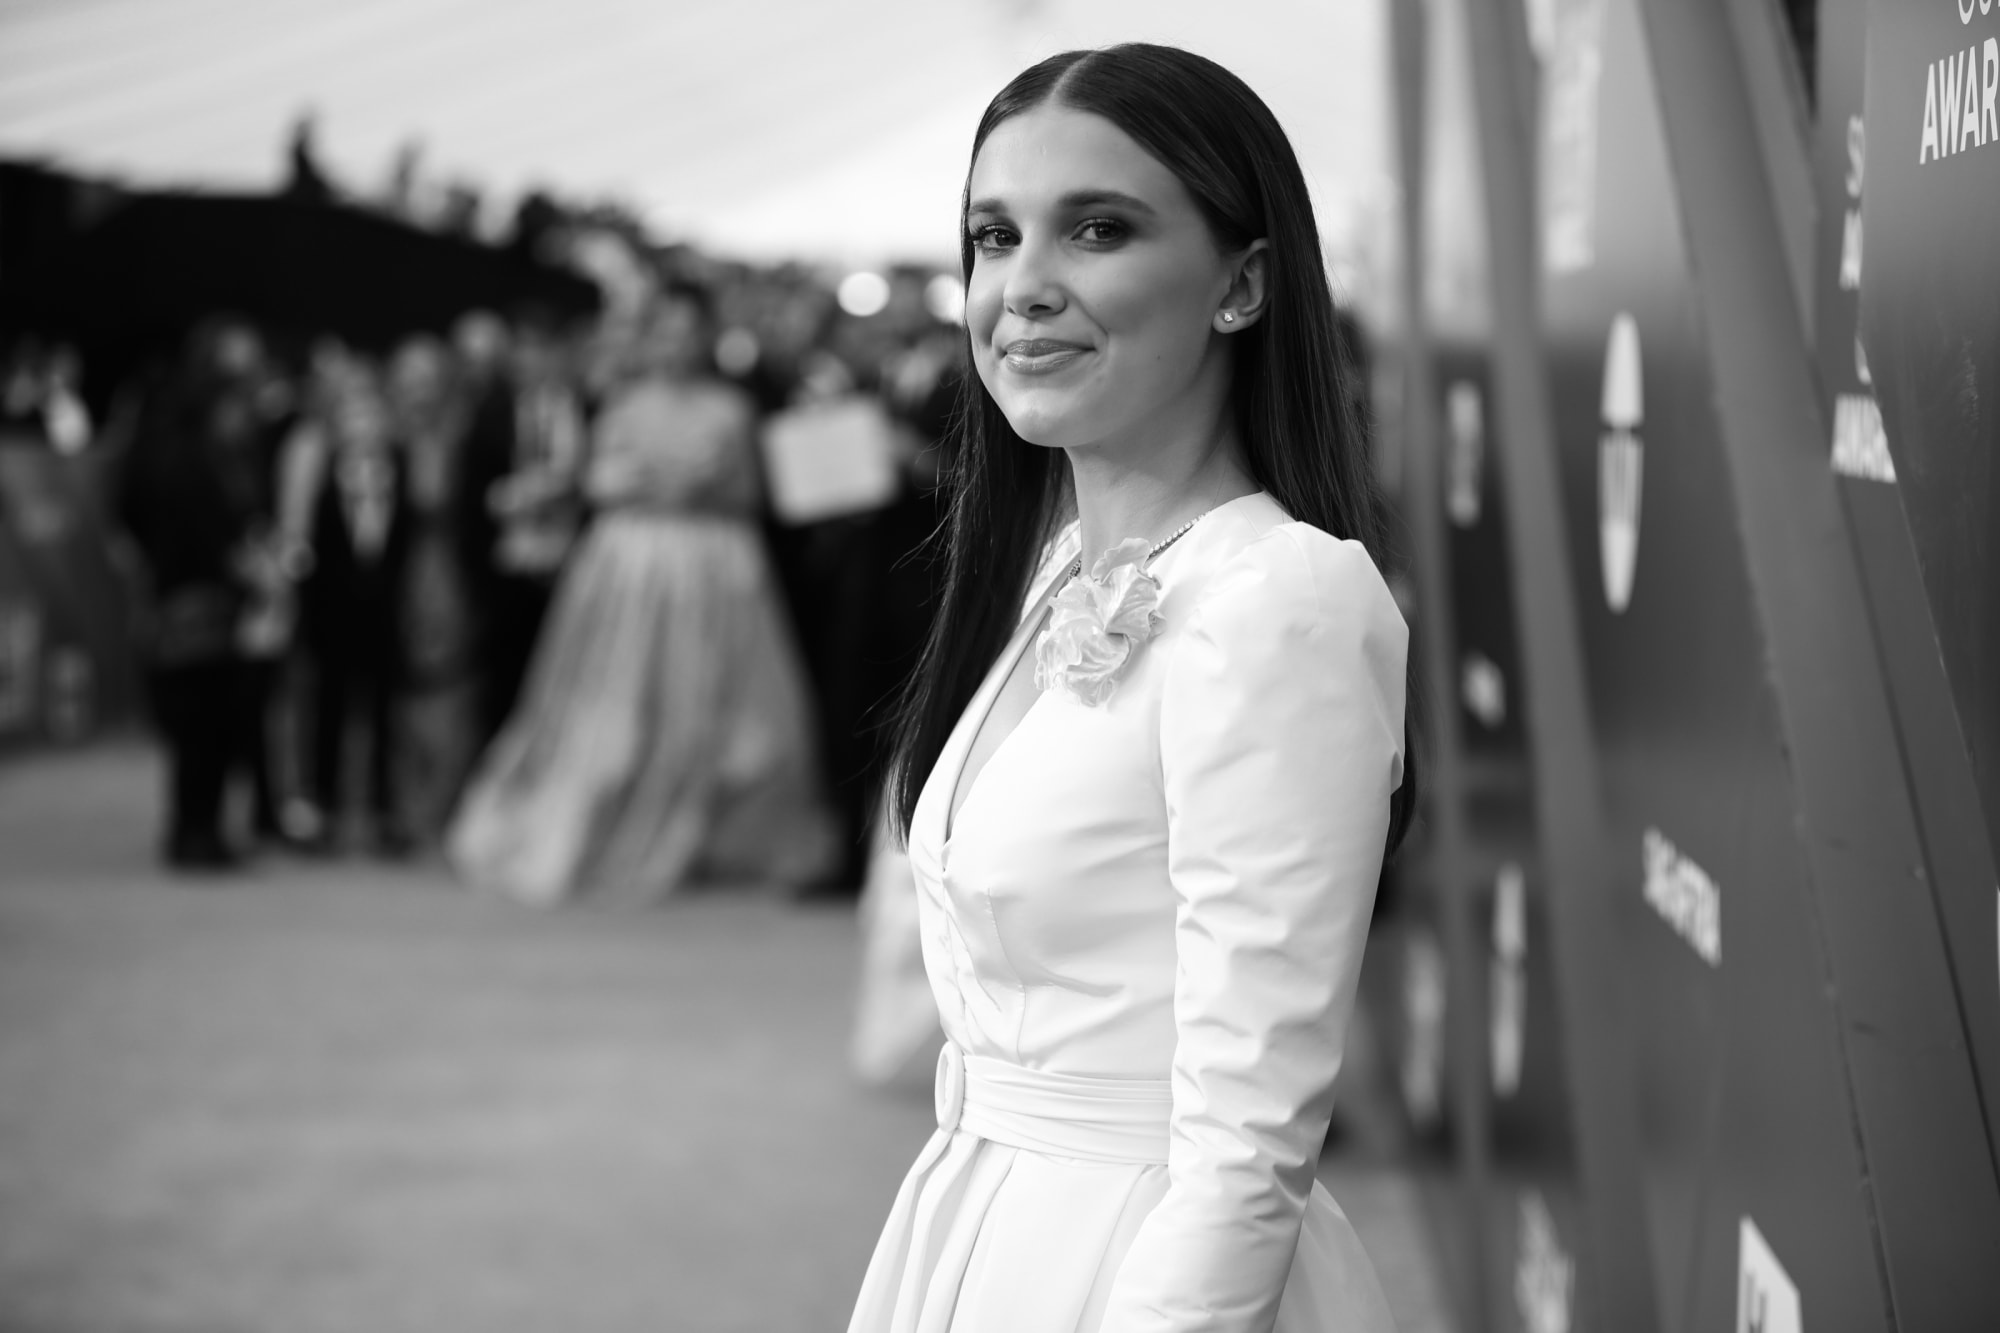 Star Wars: Millie Bobby Brown wows as Princess Leia in stunning image